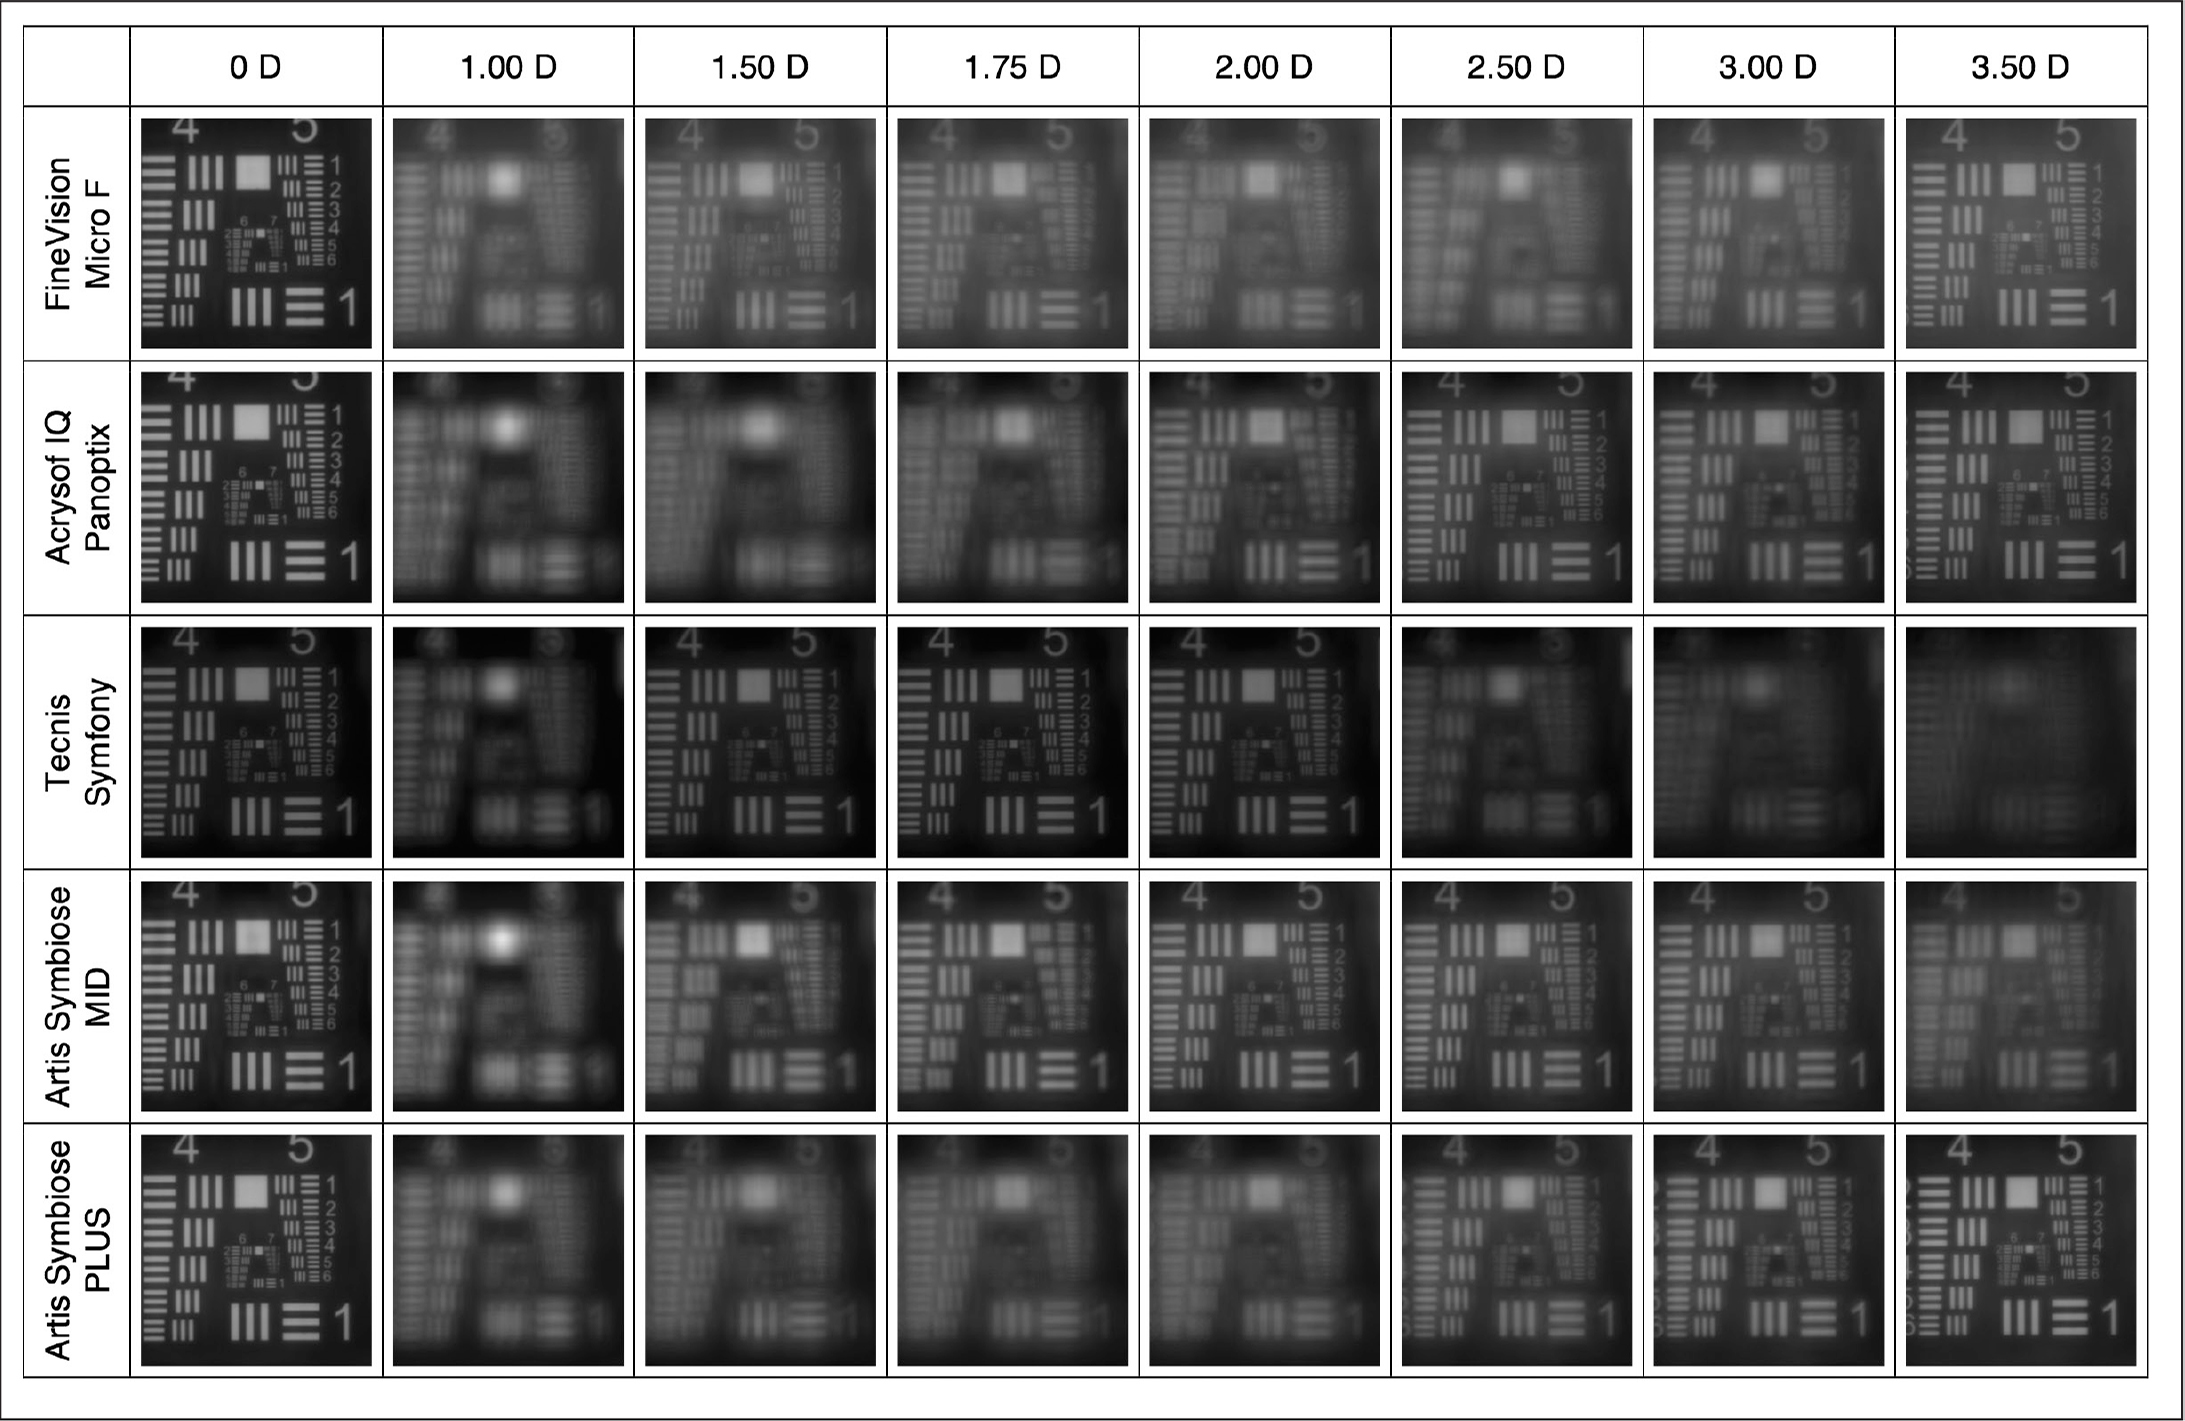 Through-focus United States Air Force imaging. Upper row shows the defocus steps at which the images were recorded. D = diopters. The FineVision is manufactured by PhysIOL; the Acrysof IQ PanOptix is manufactured by Novartis; the Tecnis Symfony is manufactured by Johnson & Johnson; and the Artis Symbiose Mid and Artis Symbiose Plus are manufactured by Cristalens Industrie.